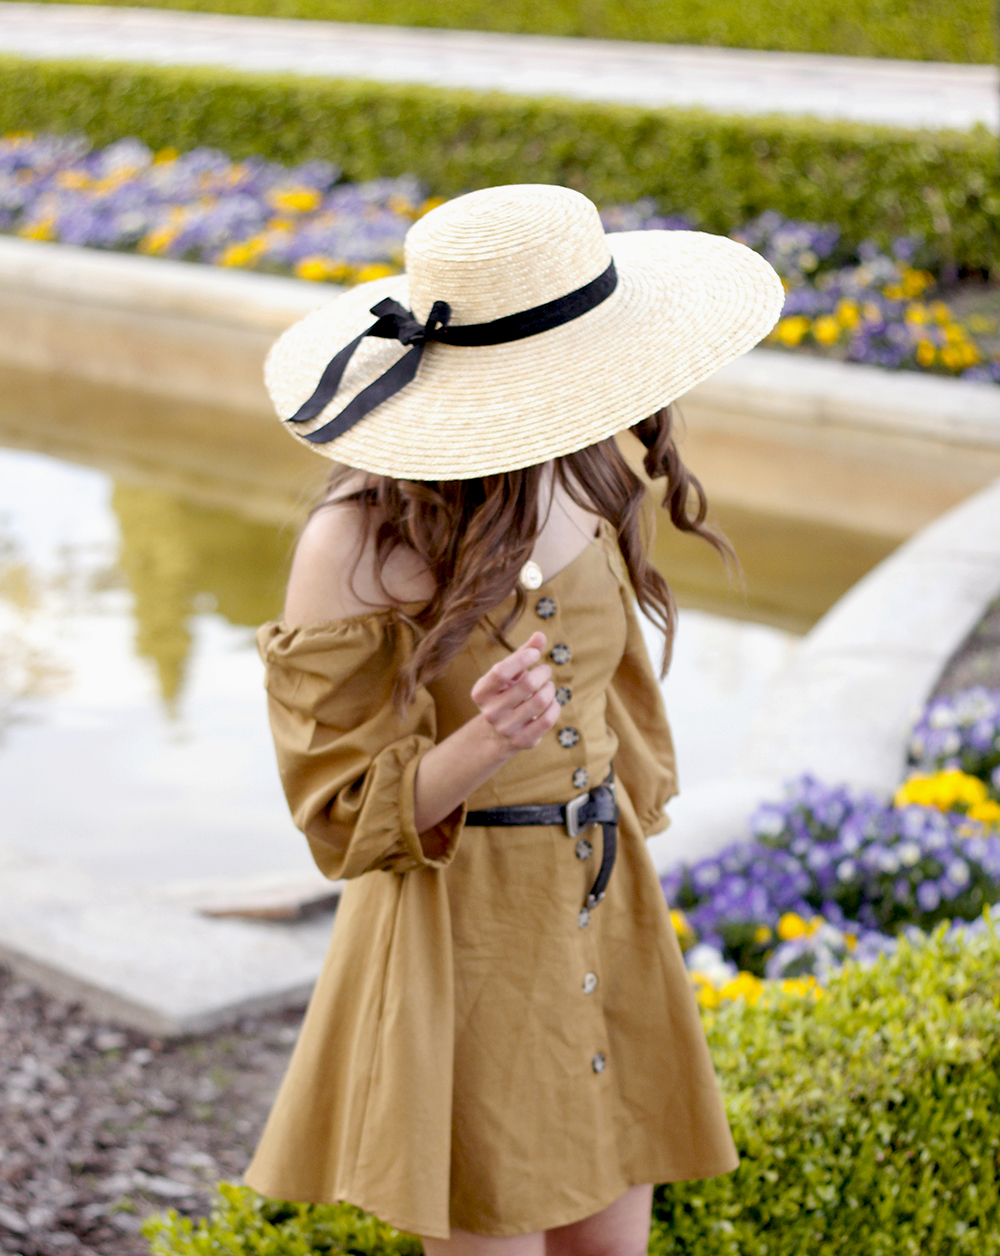 khaki linen dress black sandals straw hat street style spring outfit9